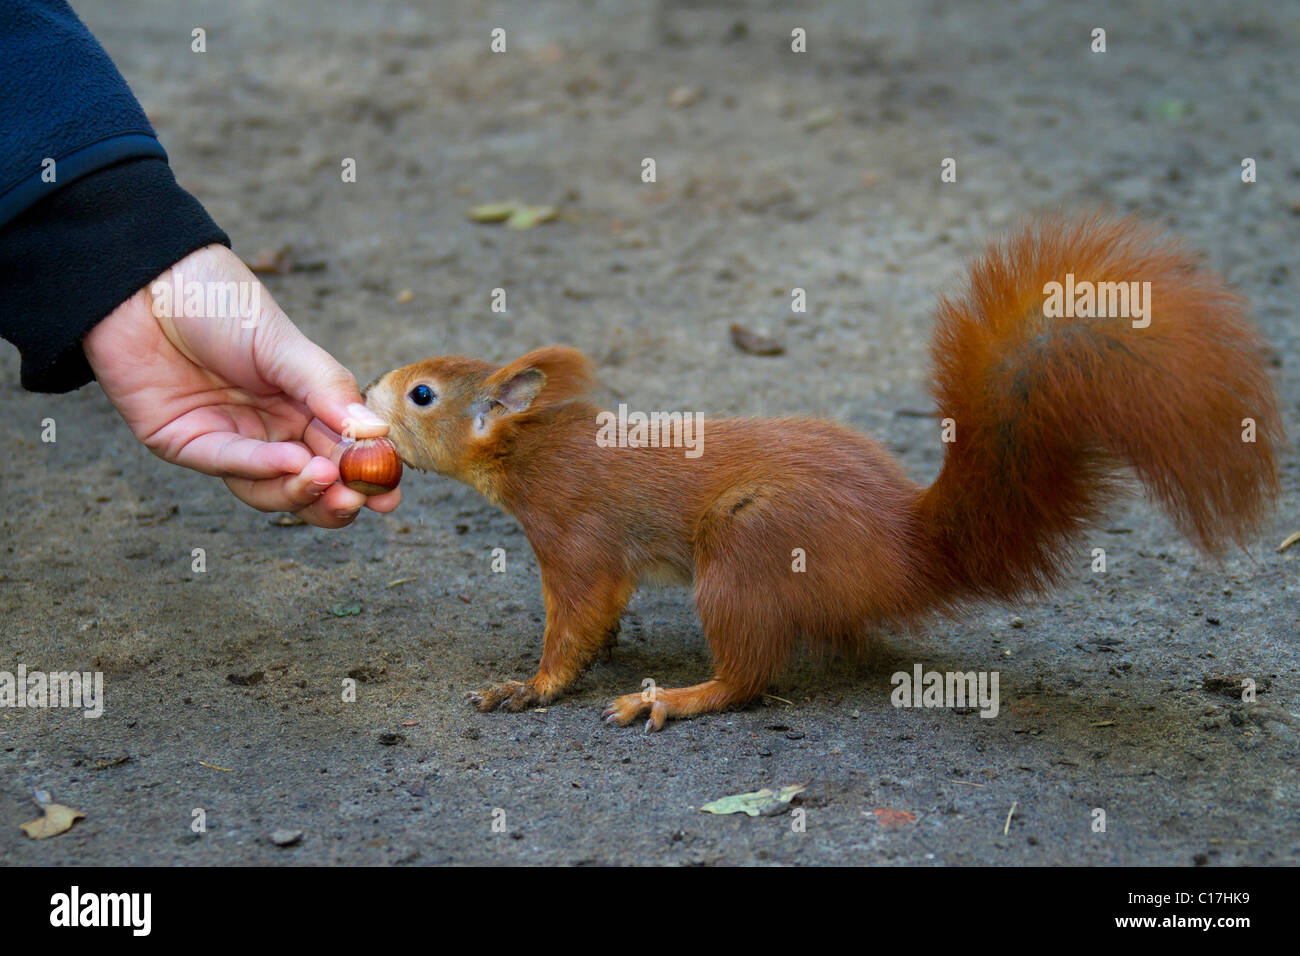 Eurasian red squirrel (Sciurus vulgaris) on the ground eating nut from hand, Germany - Stock Image